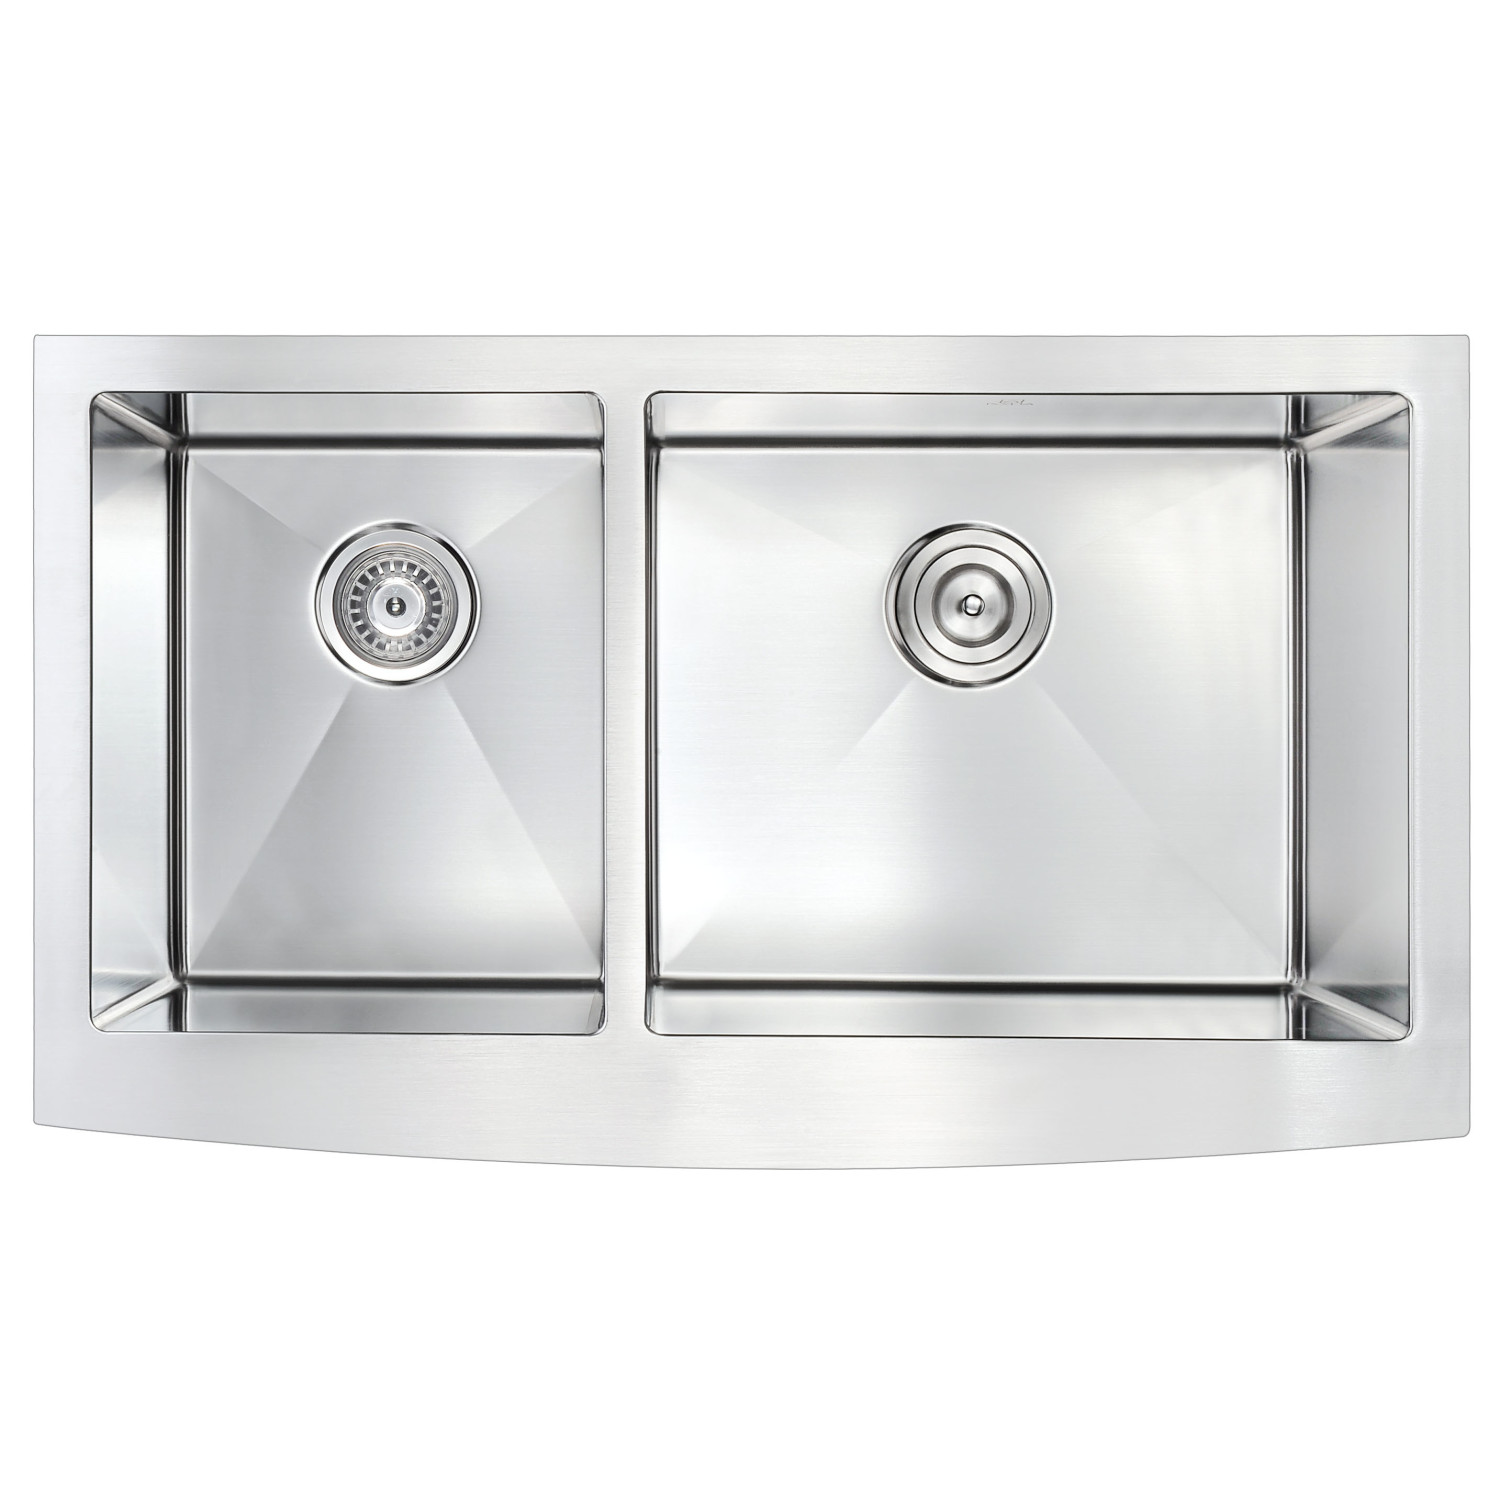 Elysian Series 36 In Farm House 40 60 Dual Basin Handmade Stainless Steel Kitchen Sink Anzzi